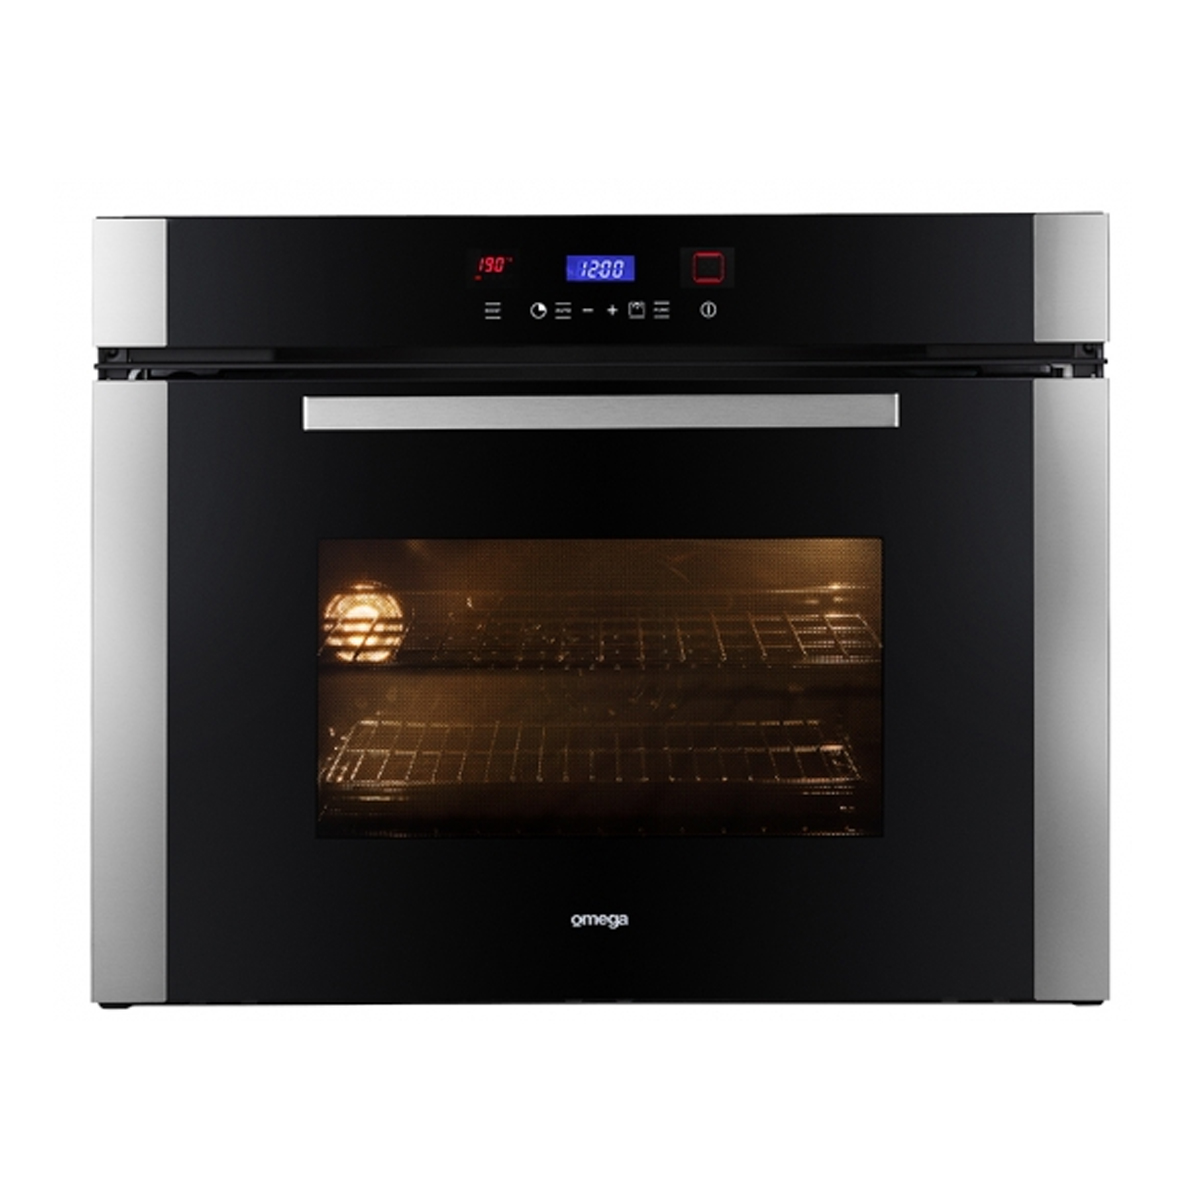 Omega OO7A1X 75cm Stainless Steel Pyrolytic Oven